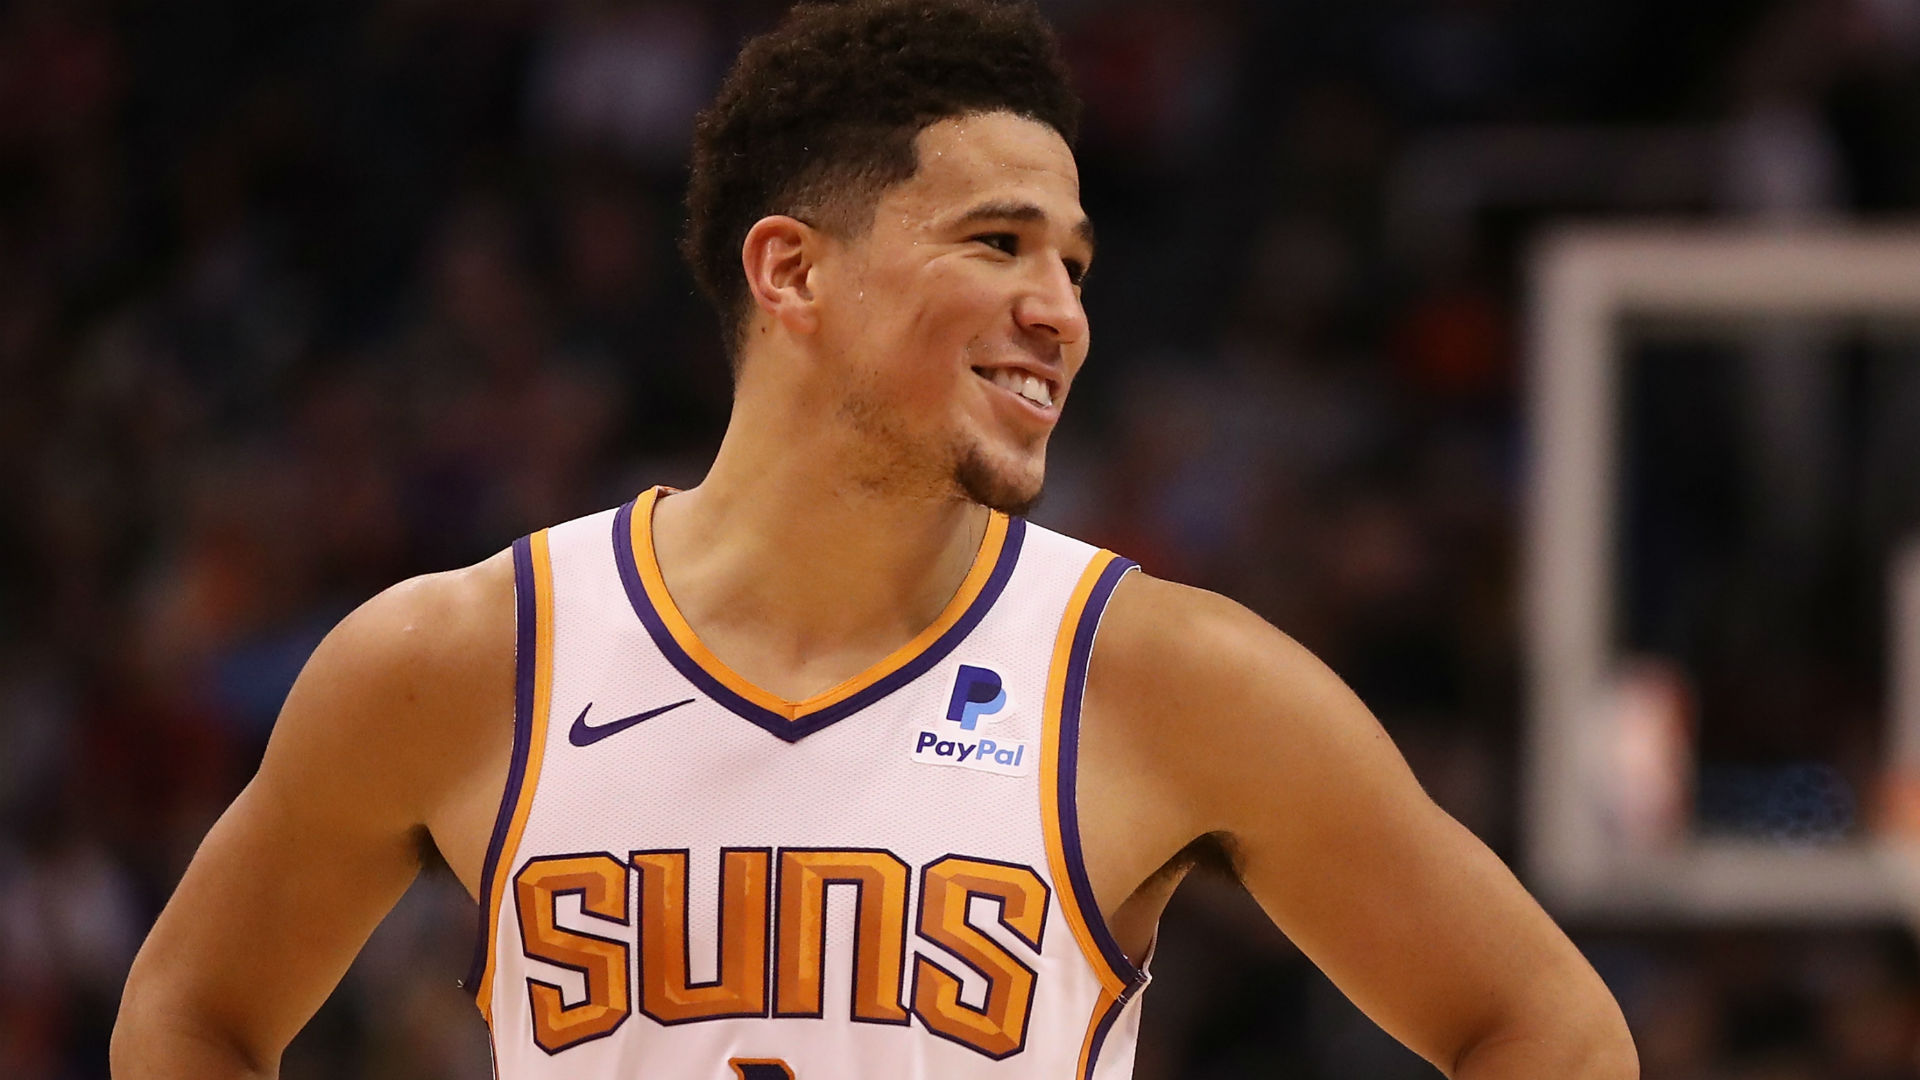 Suns star Devin Booker reaches new milestones with 59-point game